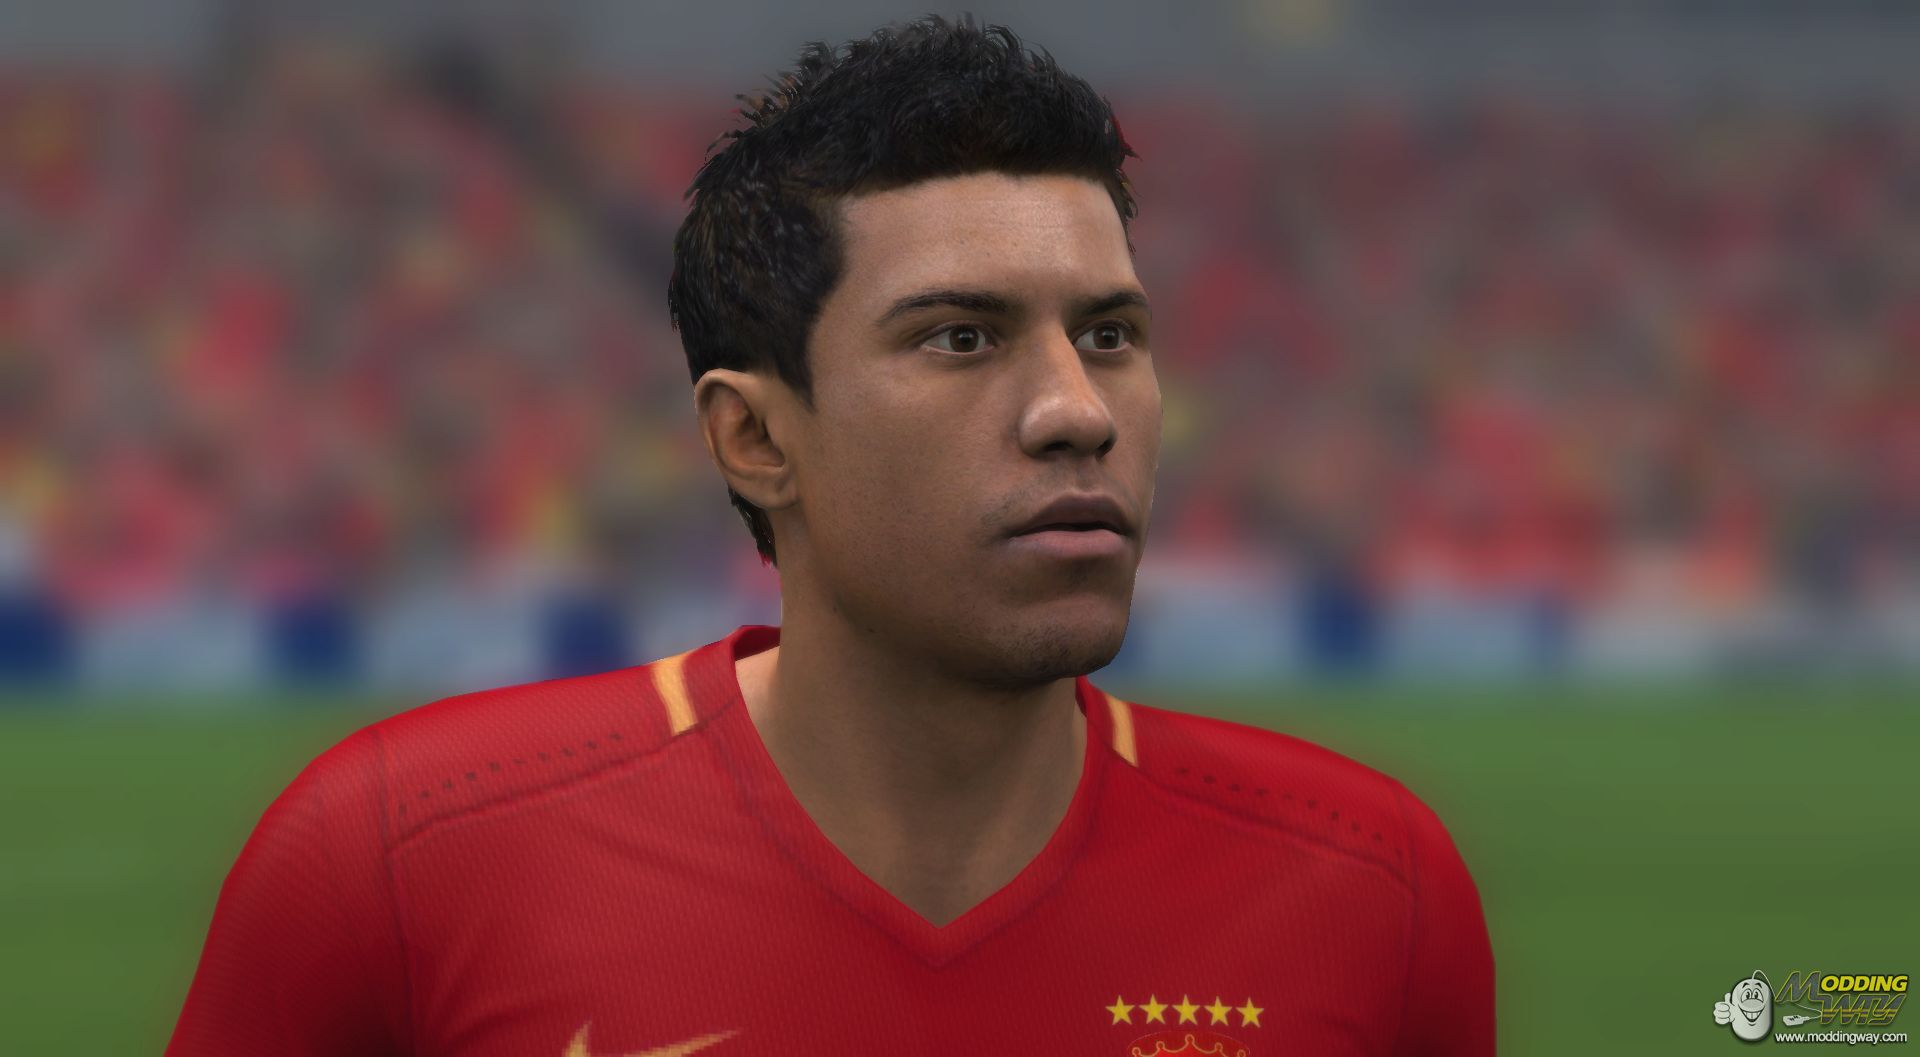 Paulinho Face 17 to 14 conversion FIFA 14 at ModdingWay